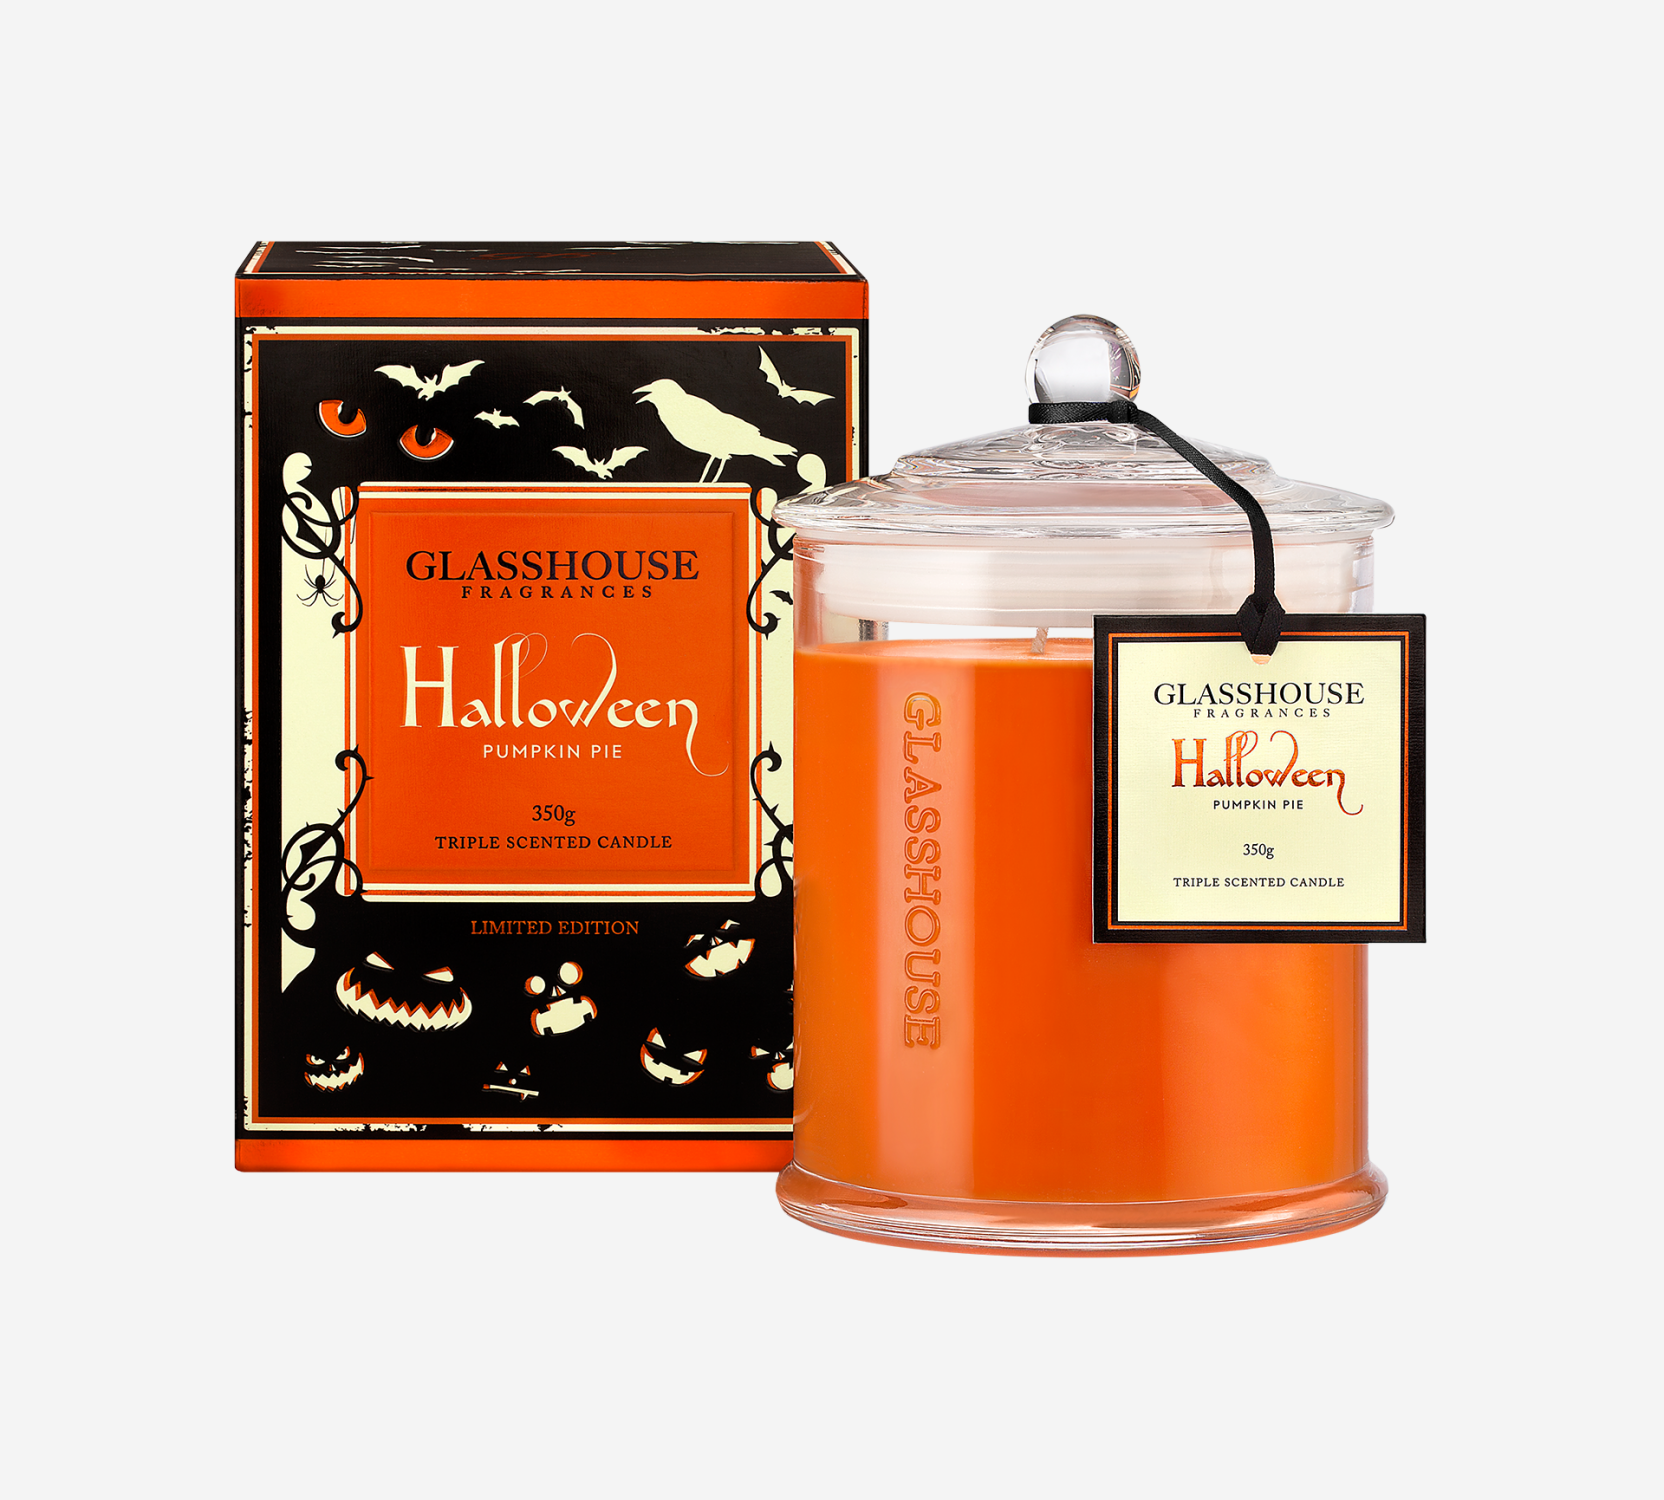 Limited Edition Halloween Pumpkin Pie Candle By Glasshouse Fragrances